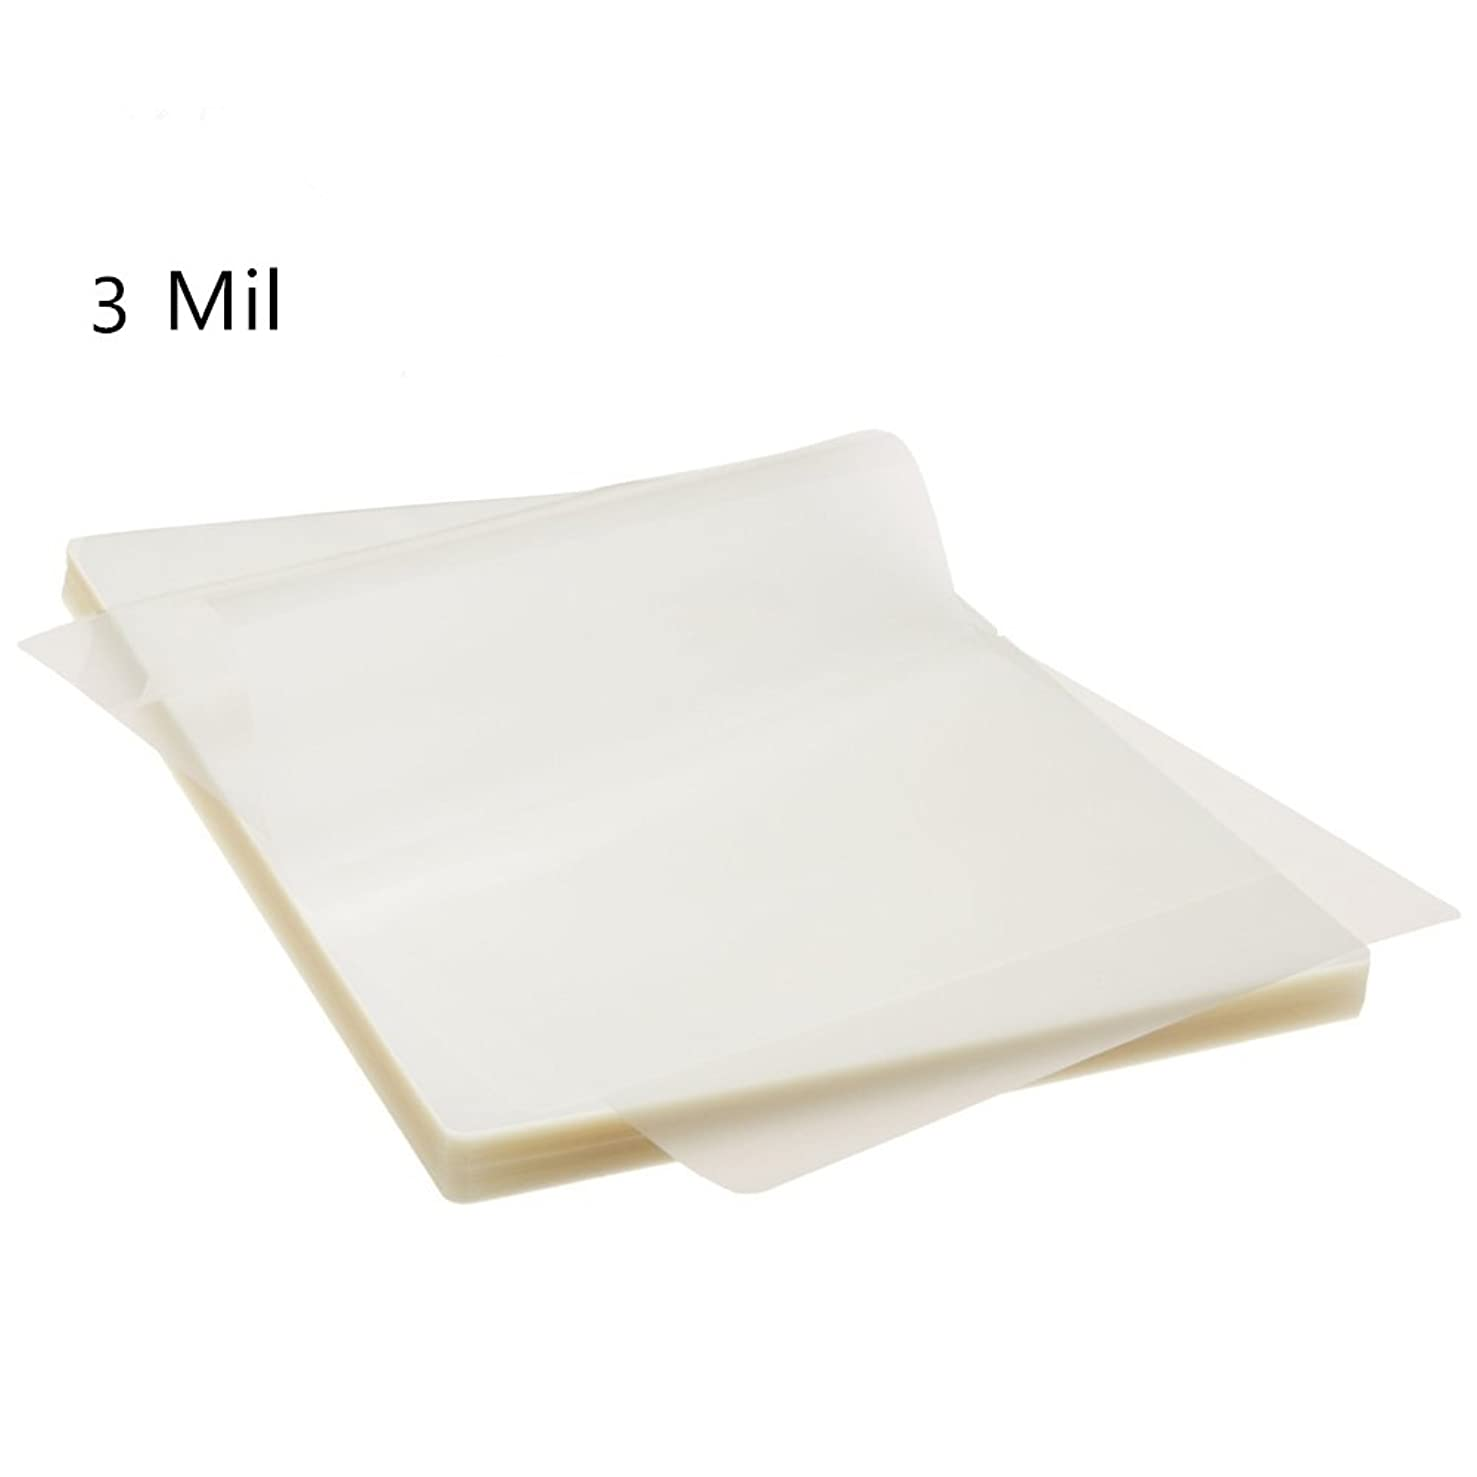 Hybsk Thermal Laminating Pouches,8.9 x 11.4-Inches,3 Mil Thick,Hot Clear Glossy (200 Pack)